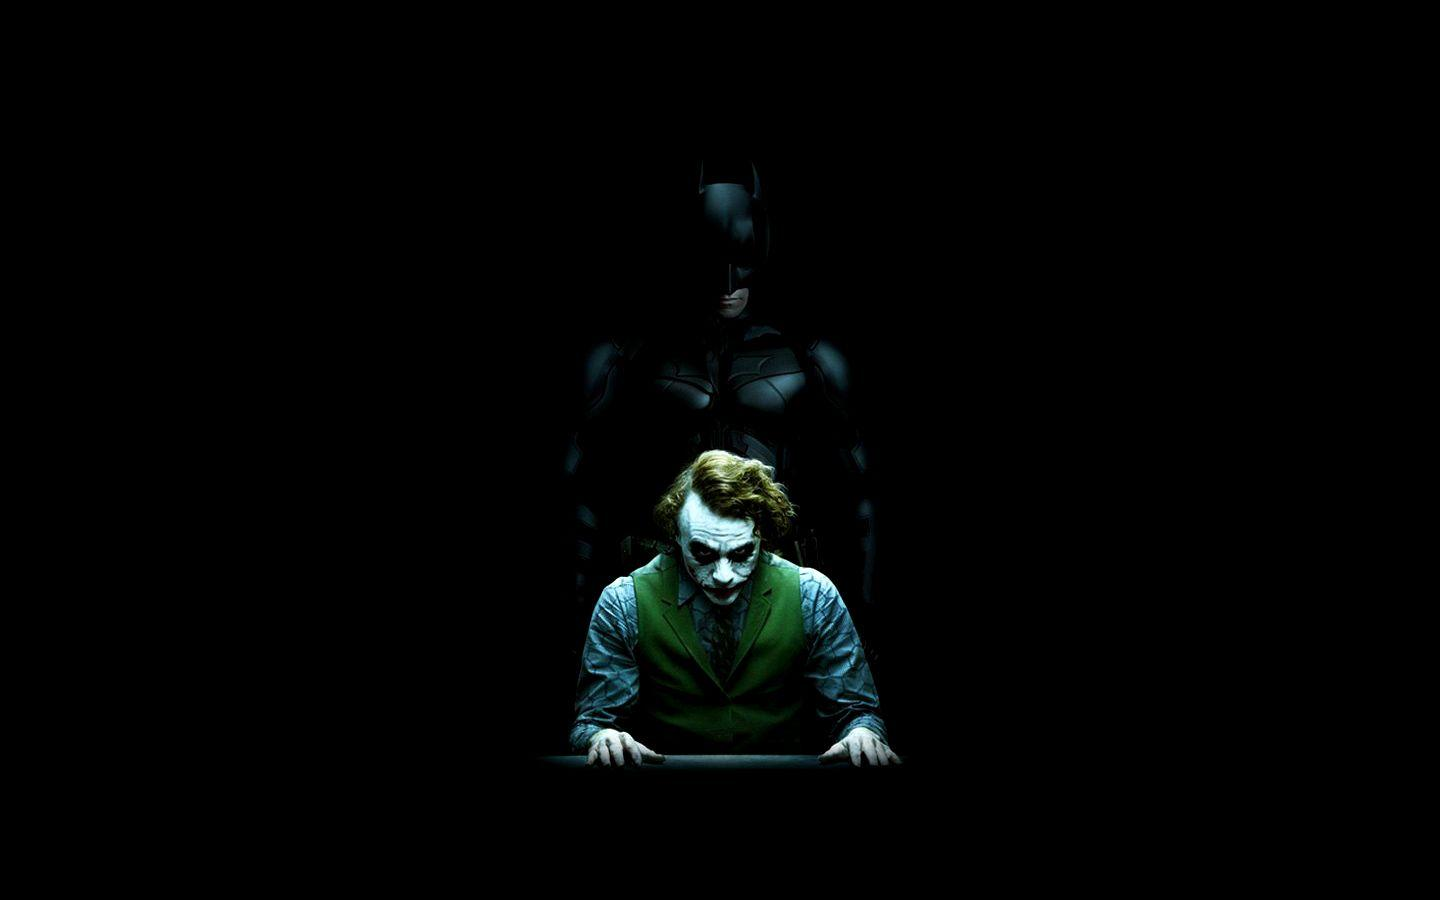 joker wallpapers dark knight wallpaper cave